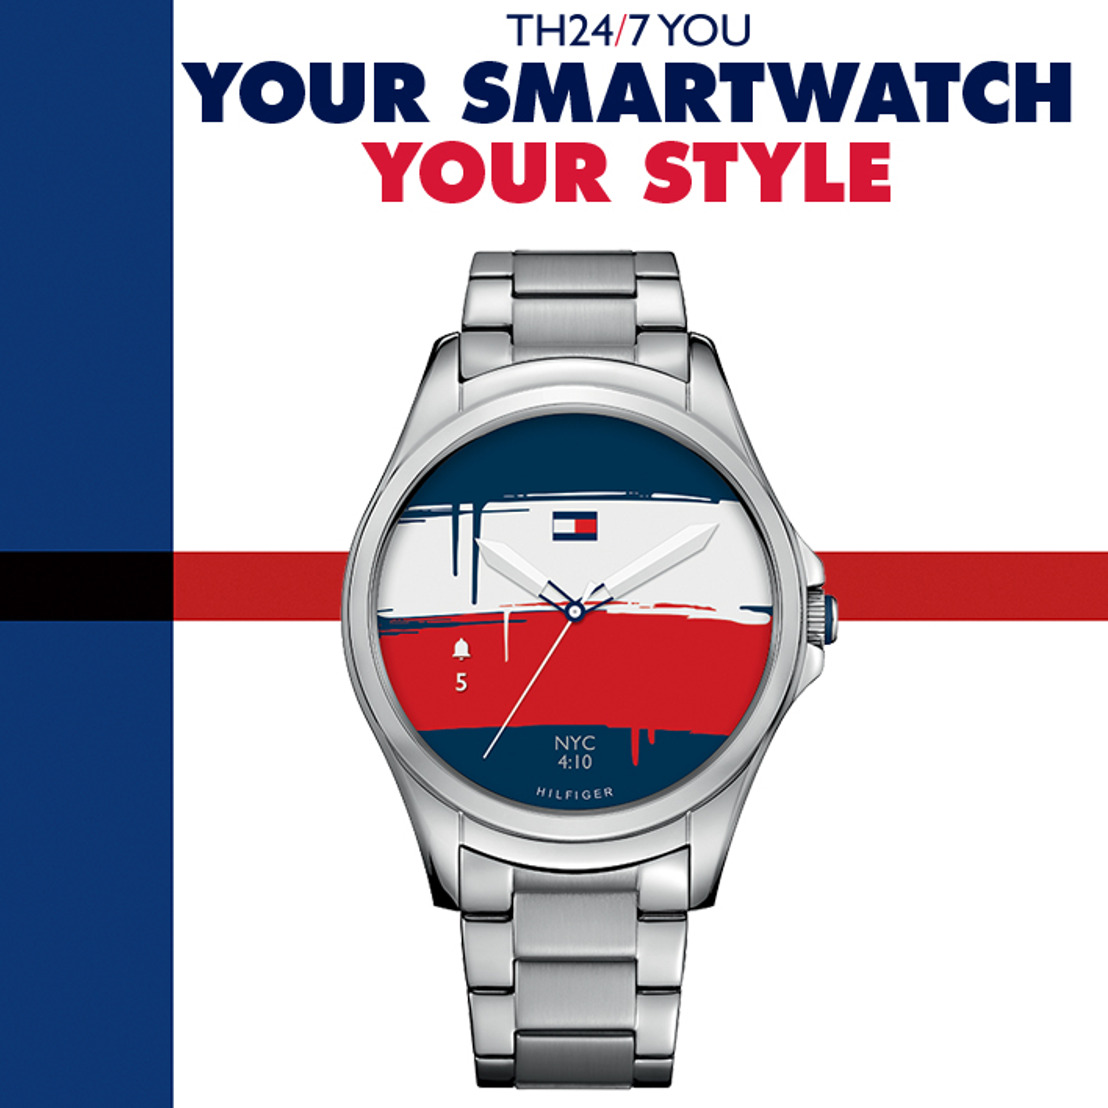 Tommy Hilfiger TH24/7 YOU: tu smartwatch, tu estilo